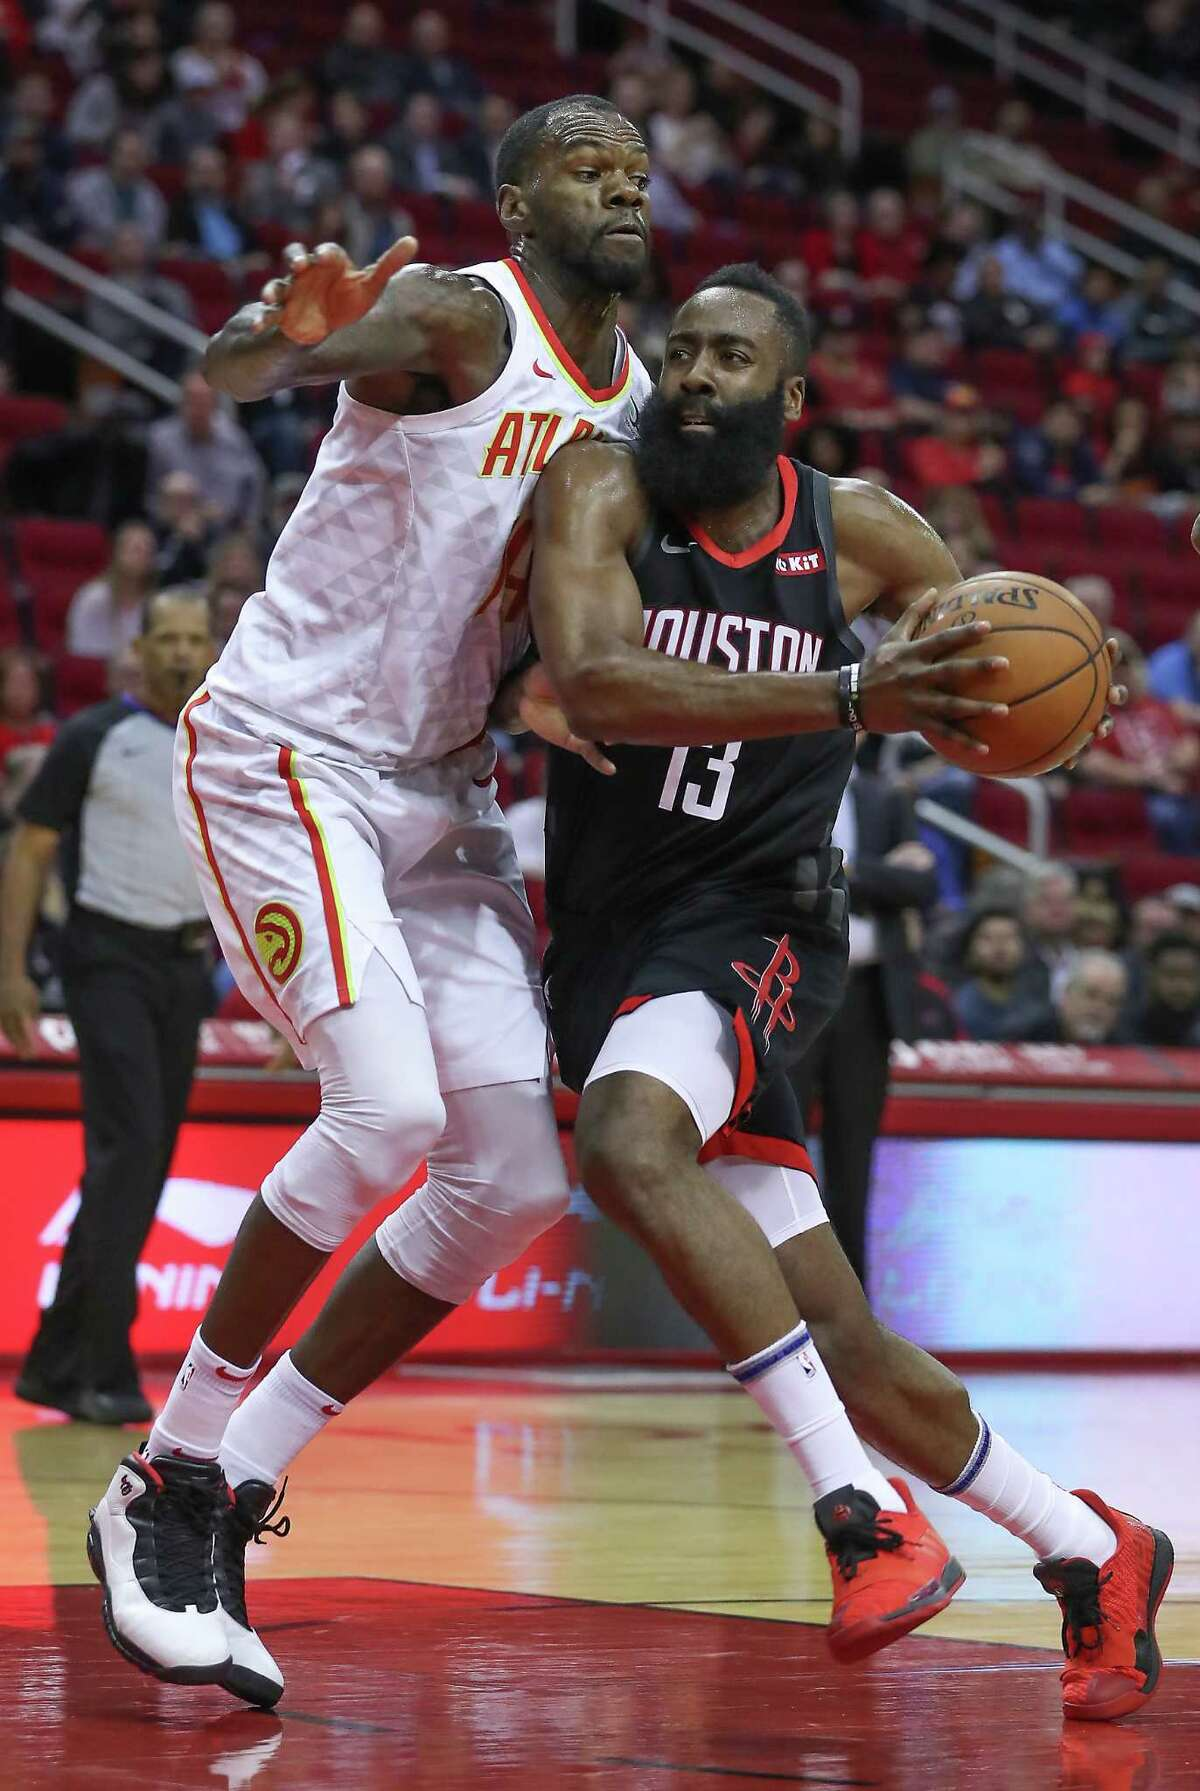 Atlanta Hawks center Dewayne Dedmon (14) attempts to stop Houston Rockets guard James Harden (13) from driving to the basket during the first half of an NBA basketball game at Toyota Center on Monday, Feb. 25, 2019, in Houston.